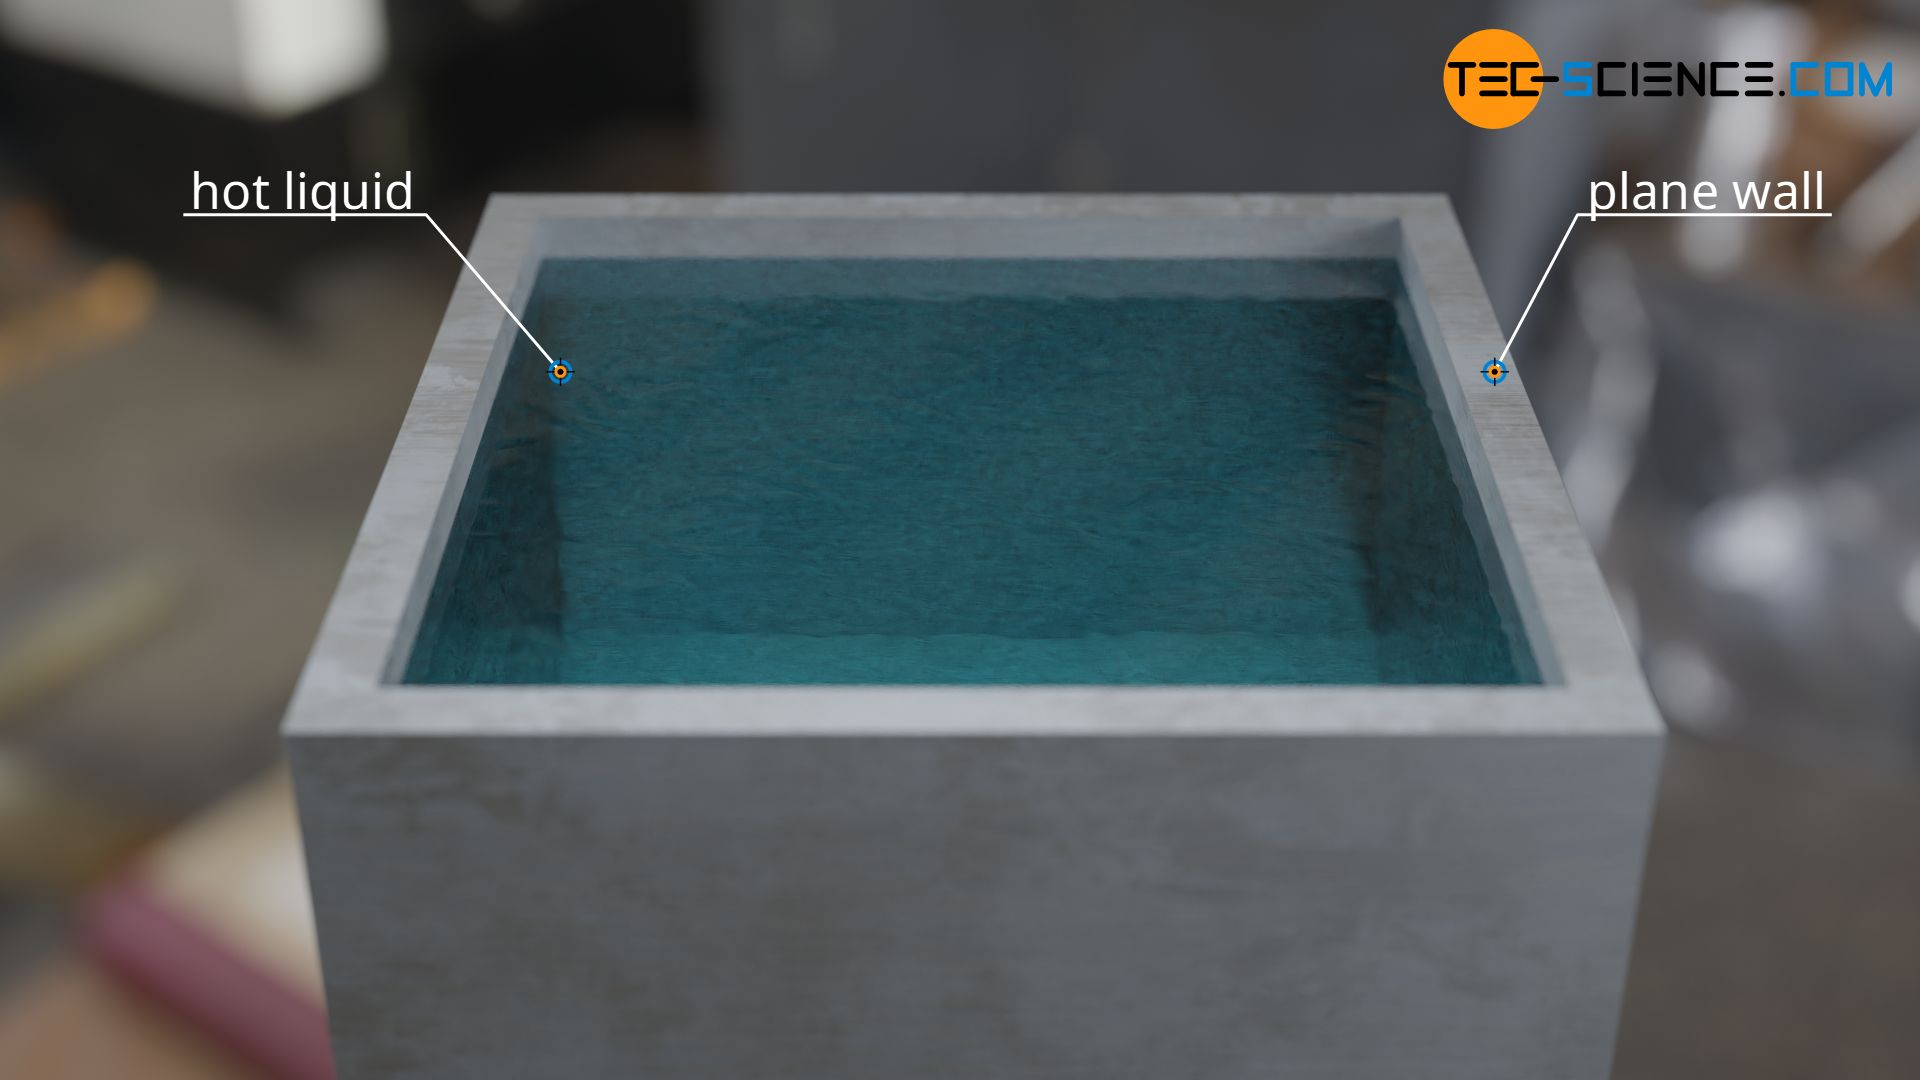 Hot liquid in a vessel with plane walls